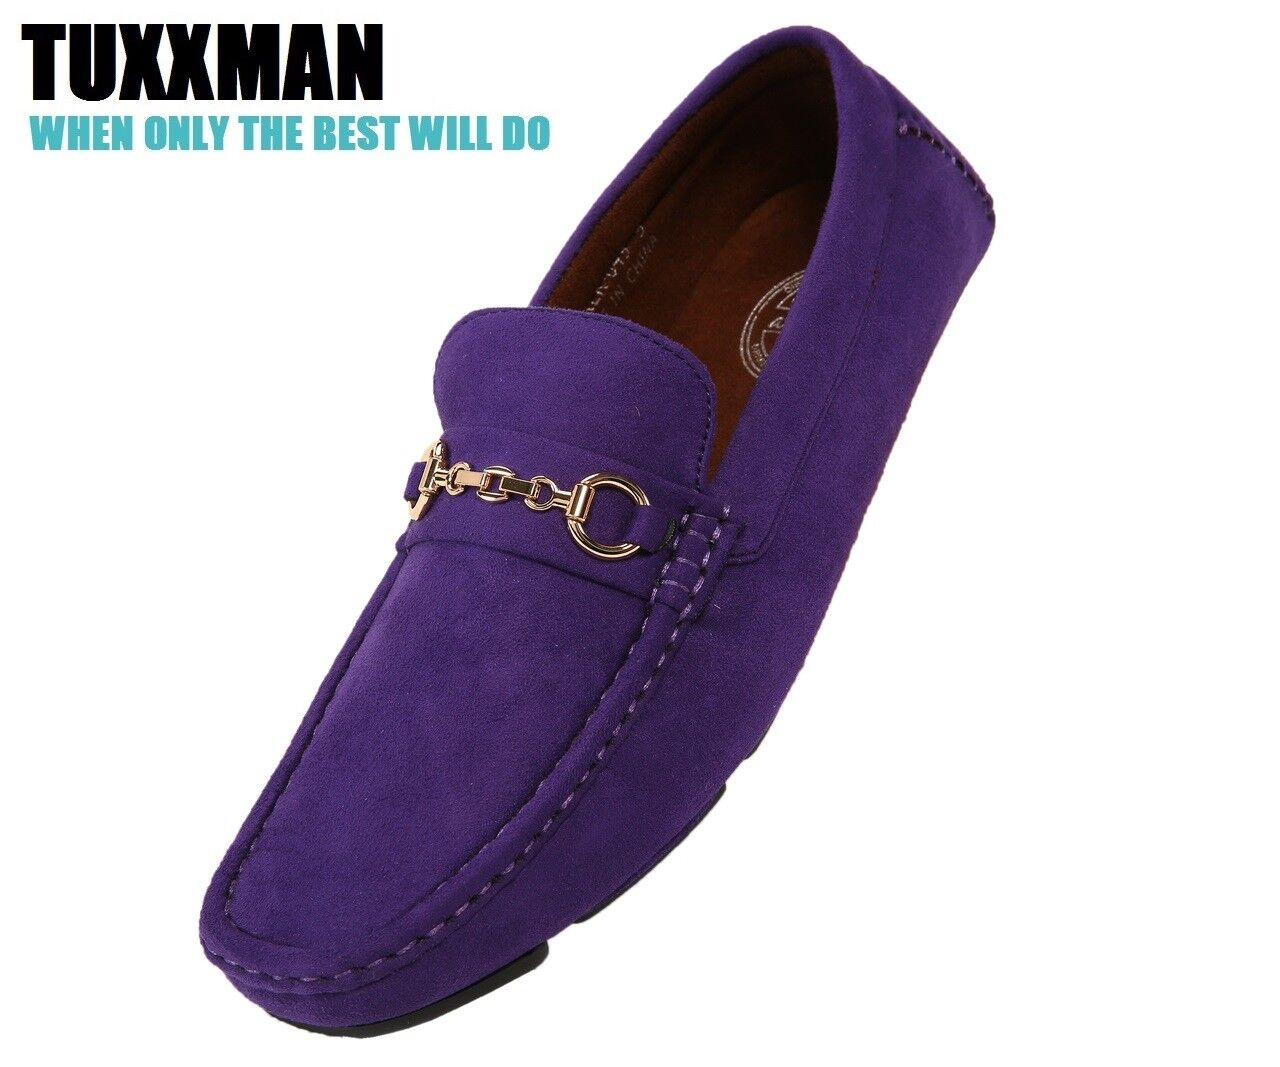 Uomo Mardi Gras Gold Shoe Driving Loafers Purple Gold Gras Chain Party Fat Tuesday TUXXMAN 672803